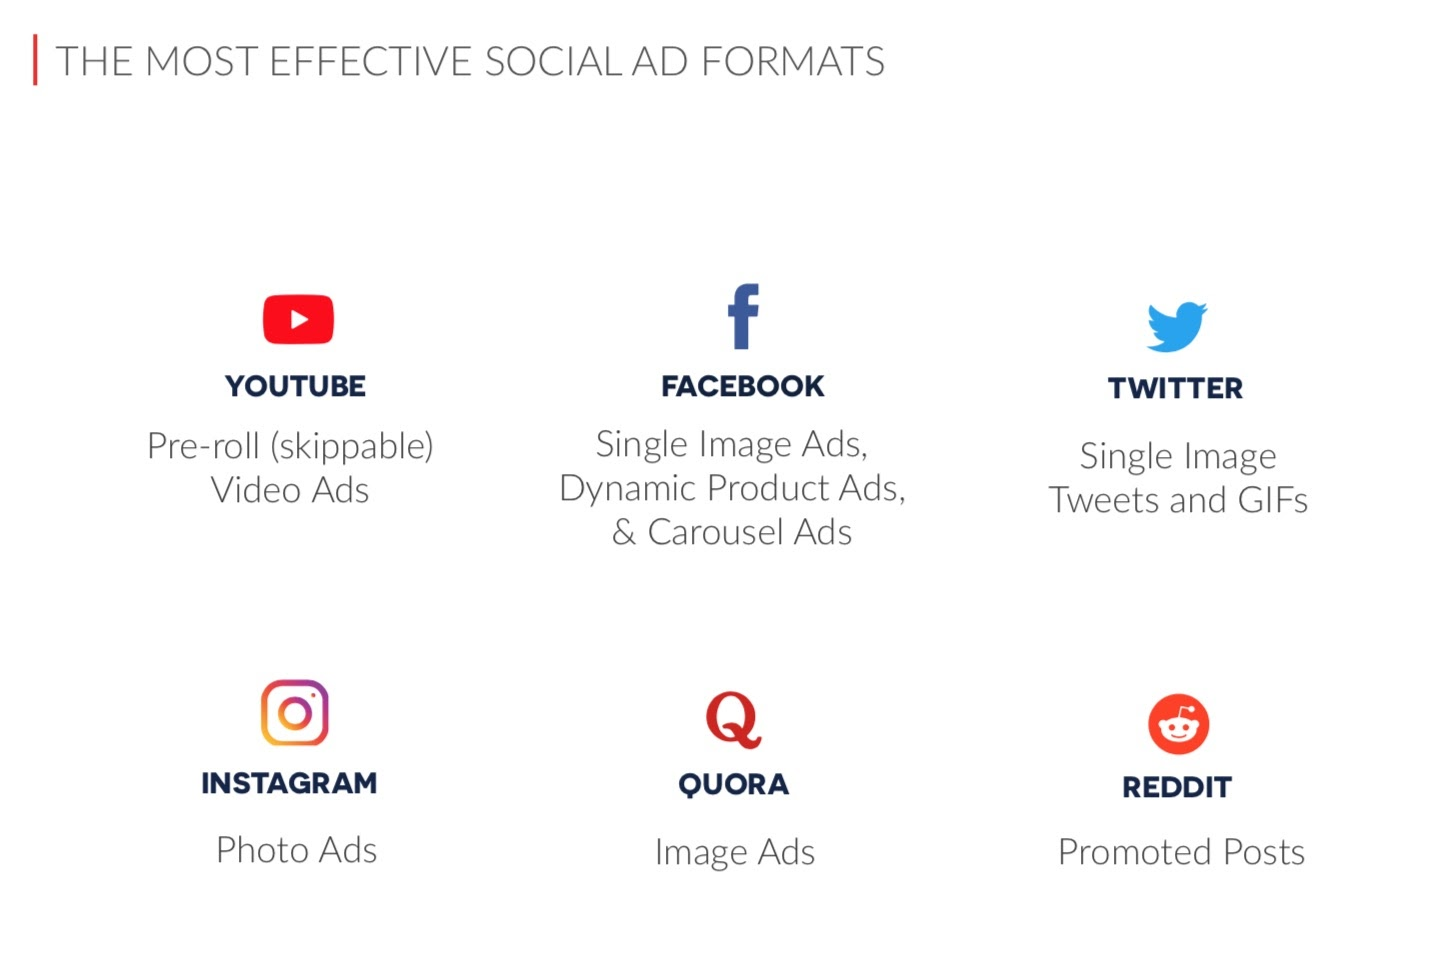 The most effective advertising formats on social networks